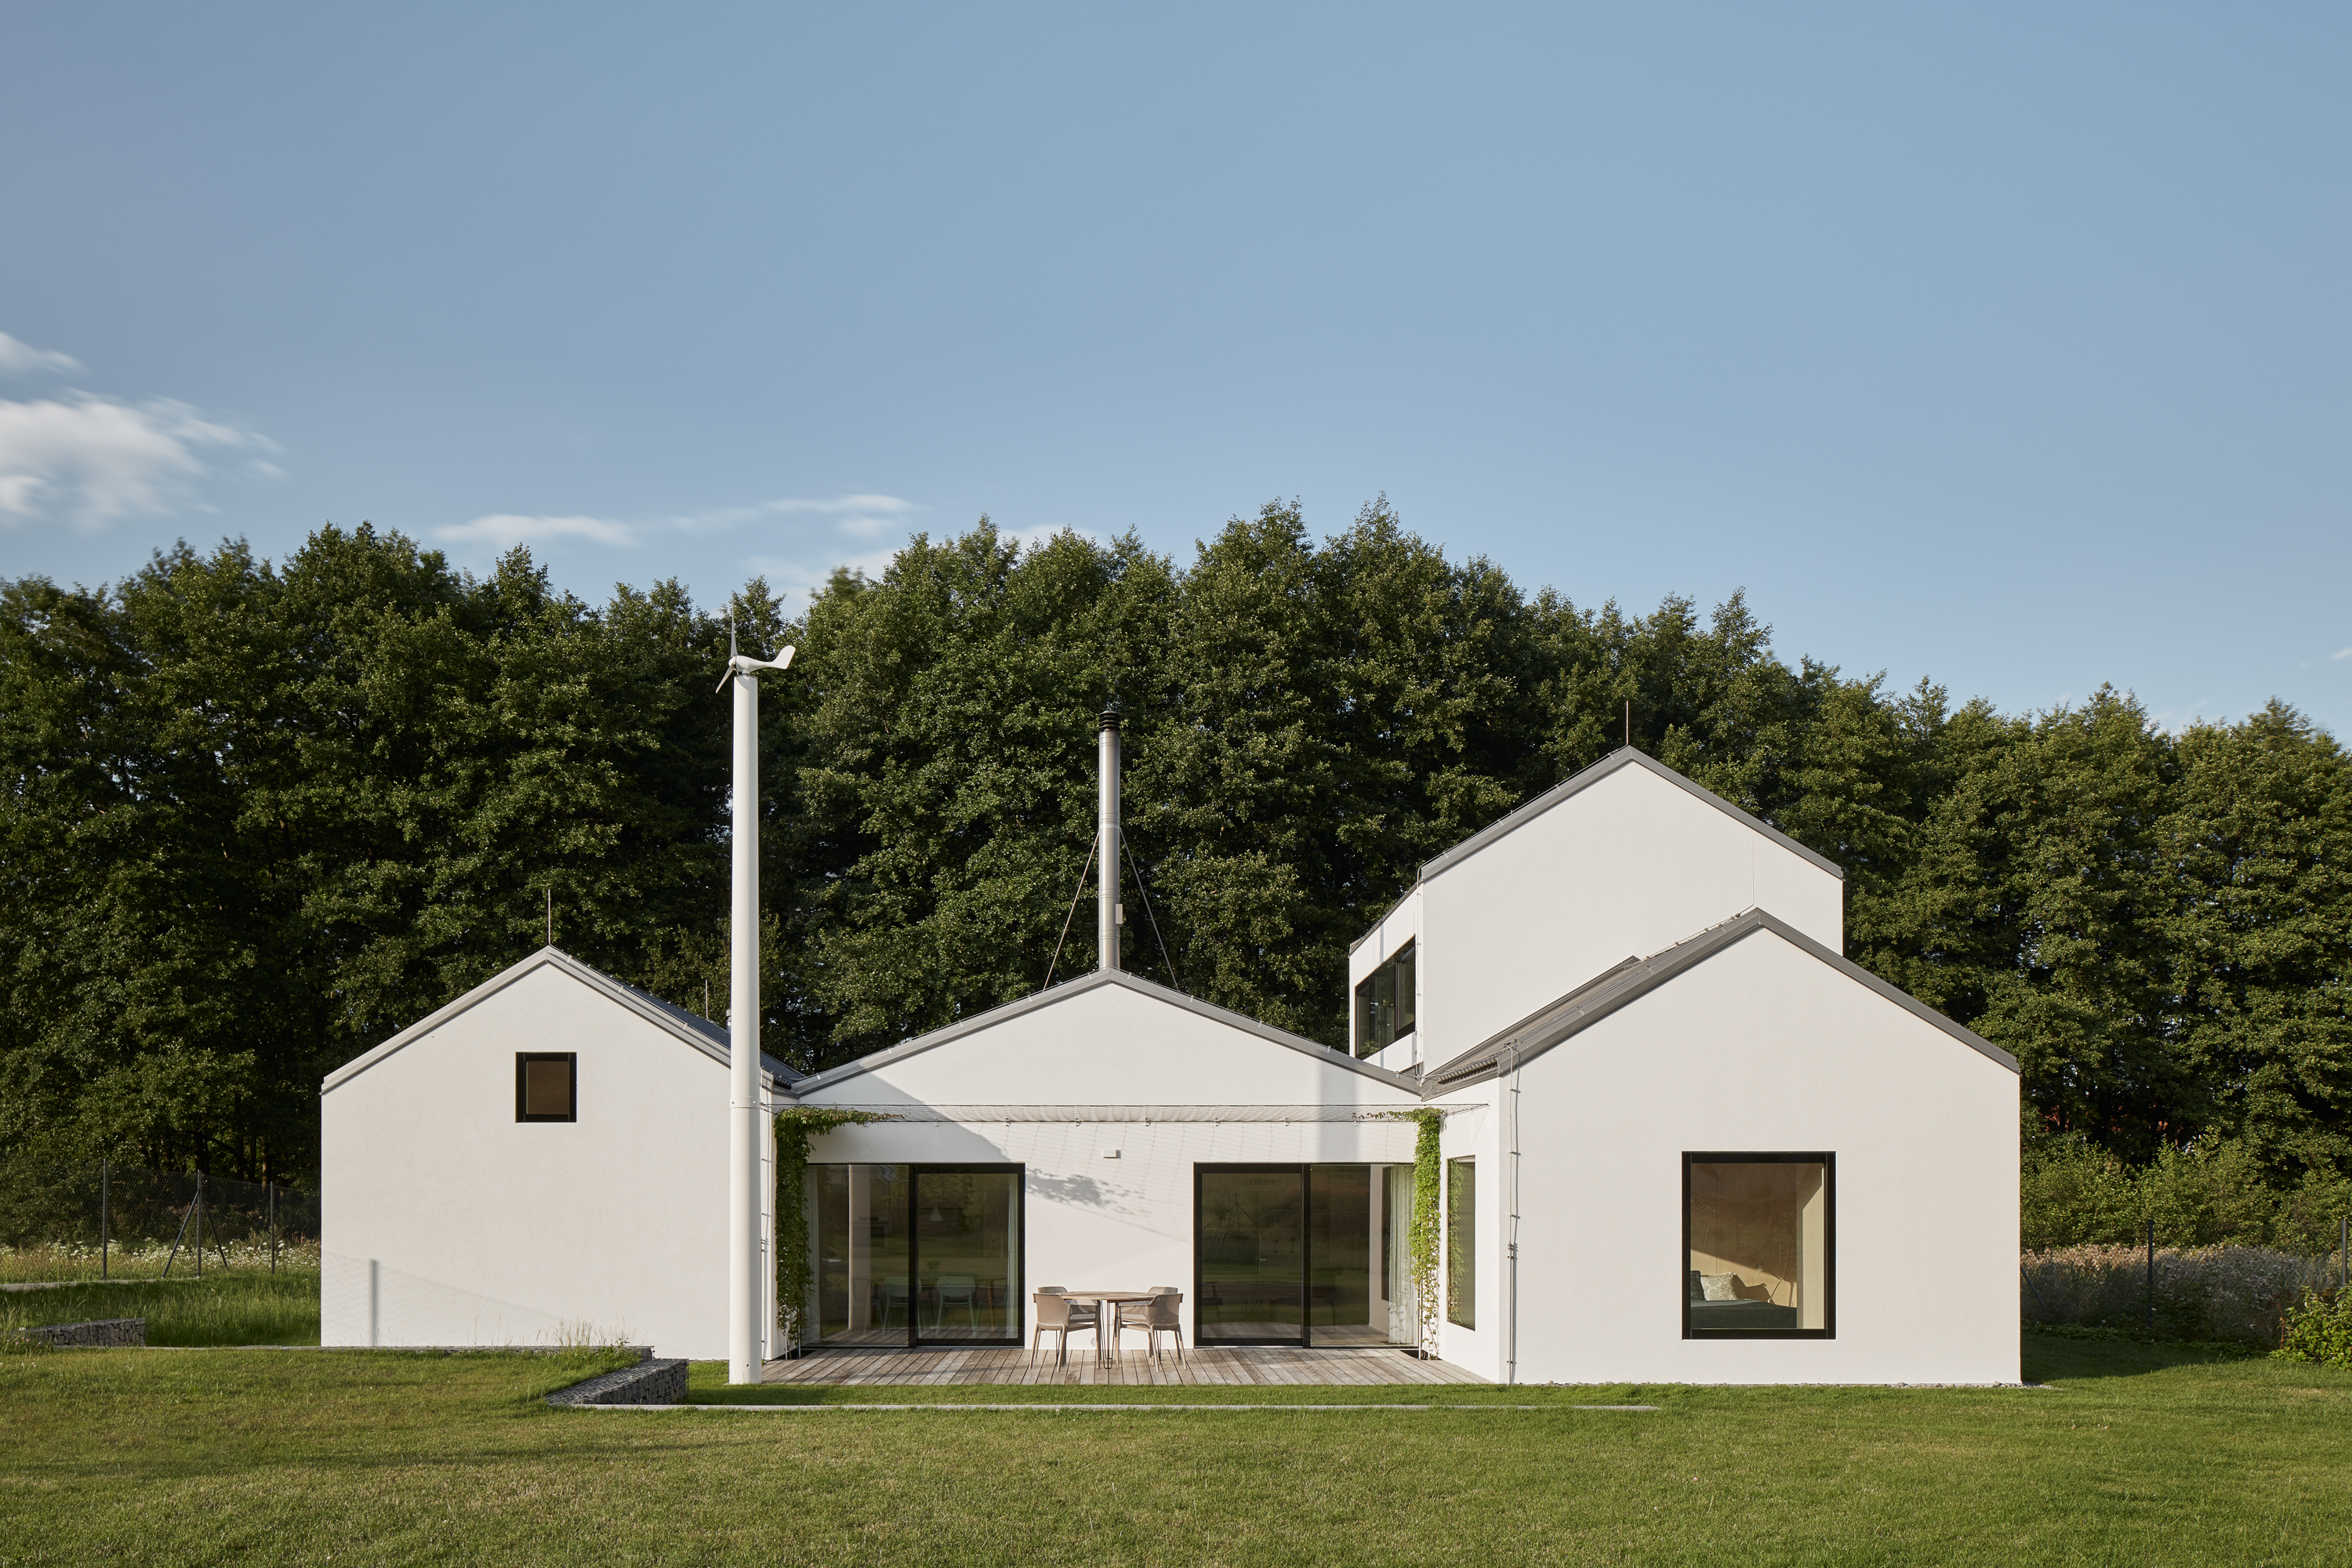 A geometric white house sits on a rolling green lawn with tall trees in the background and a blue sky.